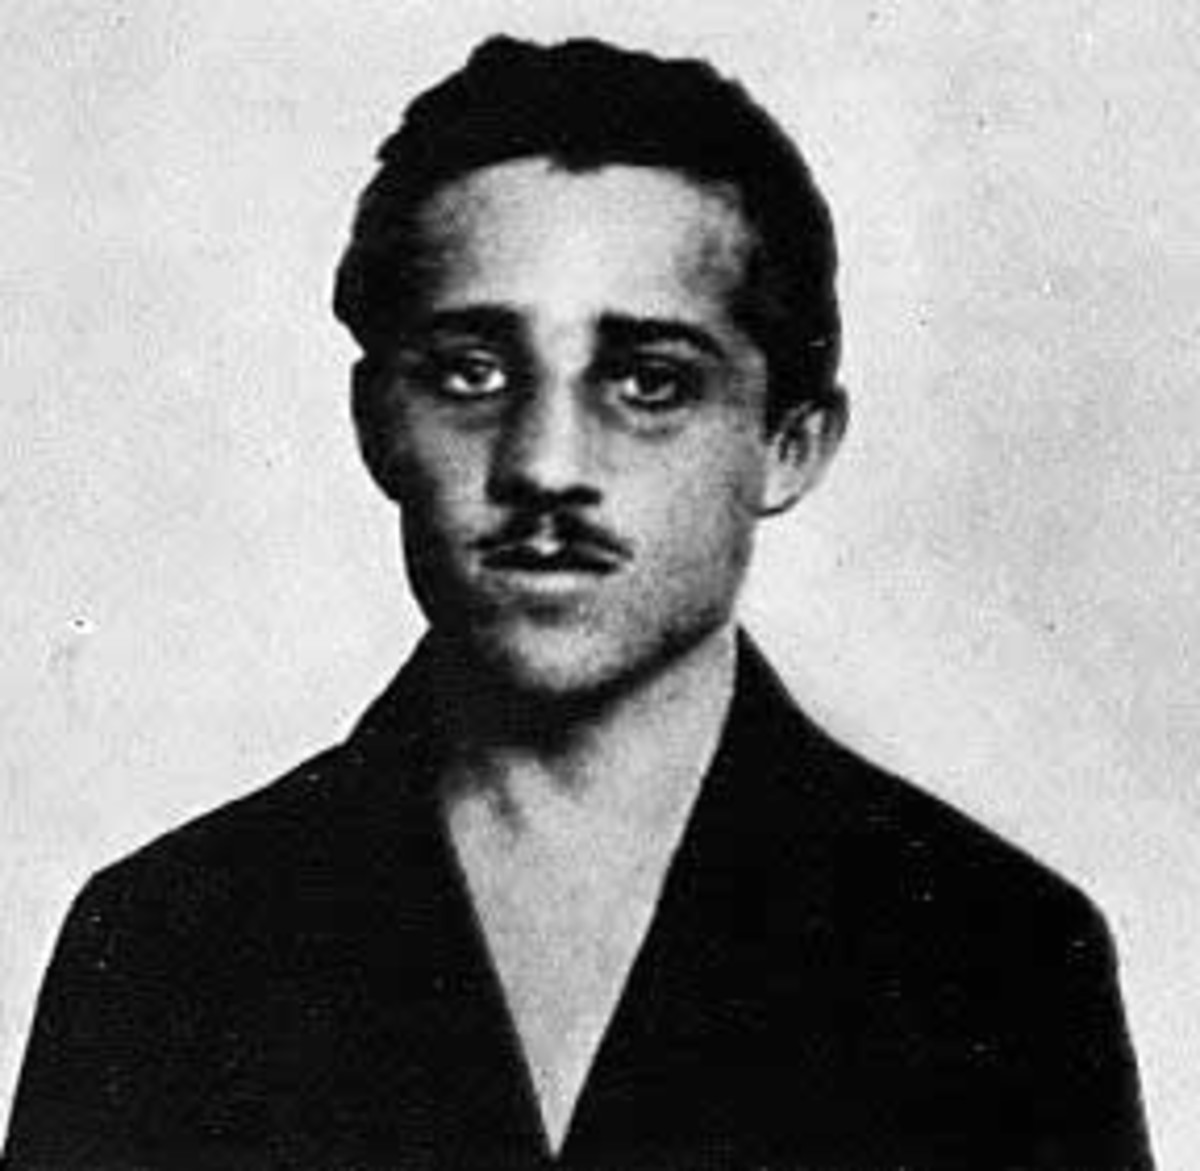 WW1. Gavrilo Princip. Shot the Archduke and his wife.